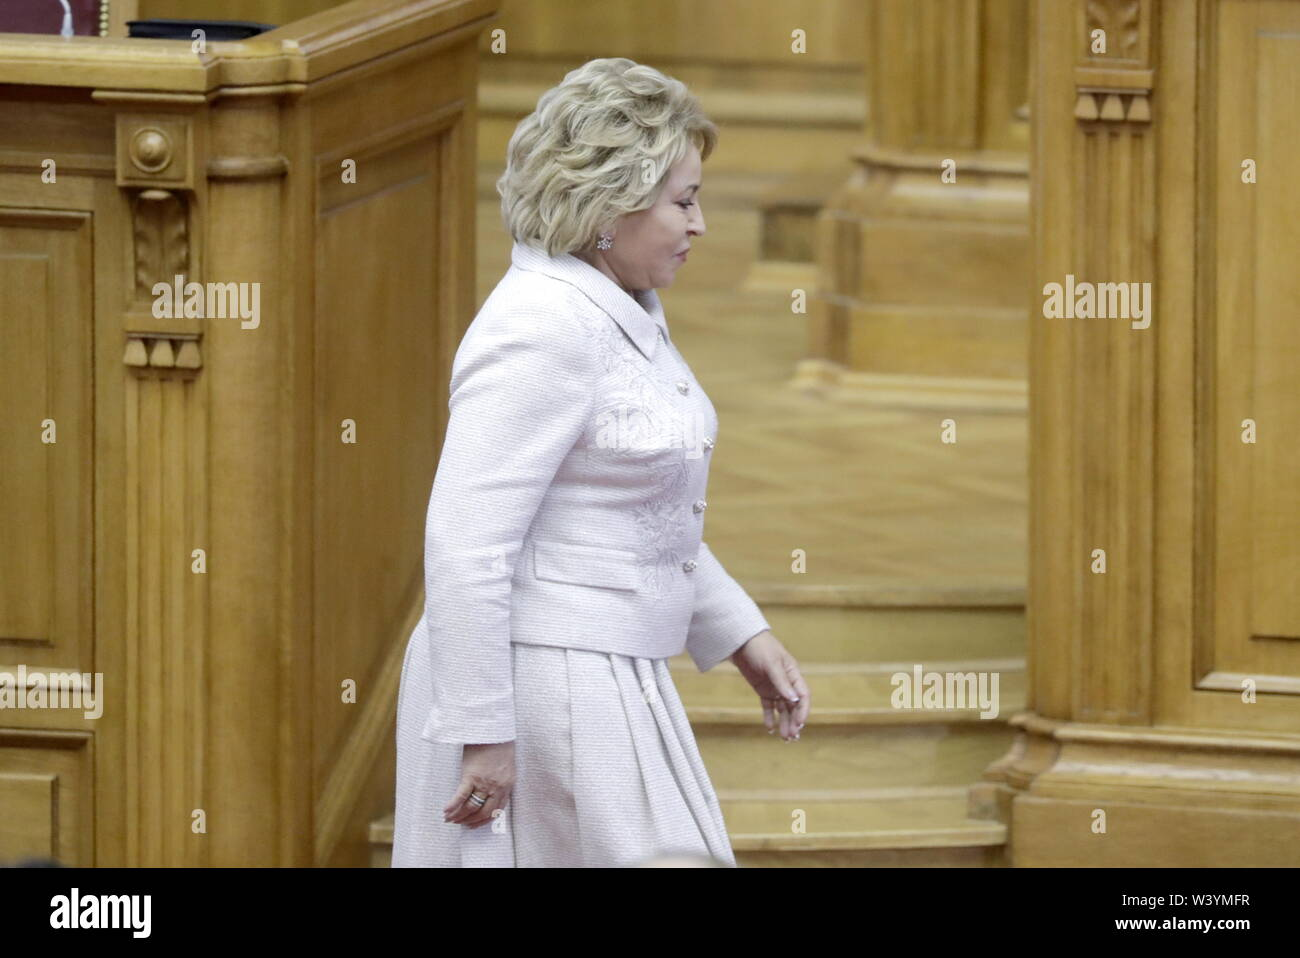 St Petersburg, Russia. 18th July, 2019. ST PETERSBURG, RUSSIA - JULY 18, 2019: Russian Federation Council Chairperson Valentina Matvienko attends a plenary meeting at the 6th Belarus-Russia Forum of Regions, Tauride Palace. Mikhail Metzel/TASS Credit: ITAR-TASS News Agency/Alamy Live News - Stock Image